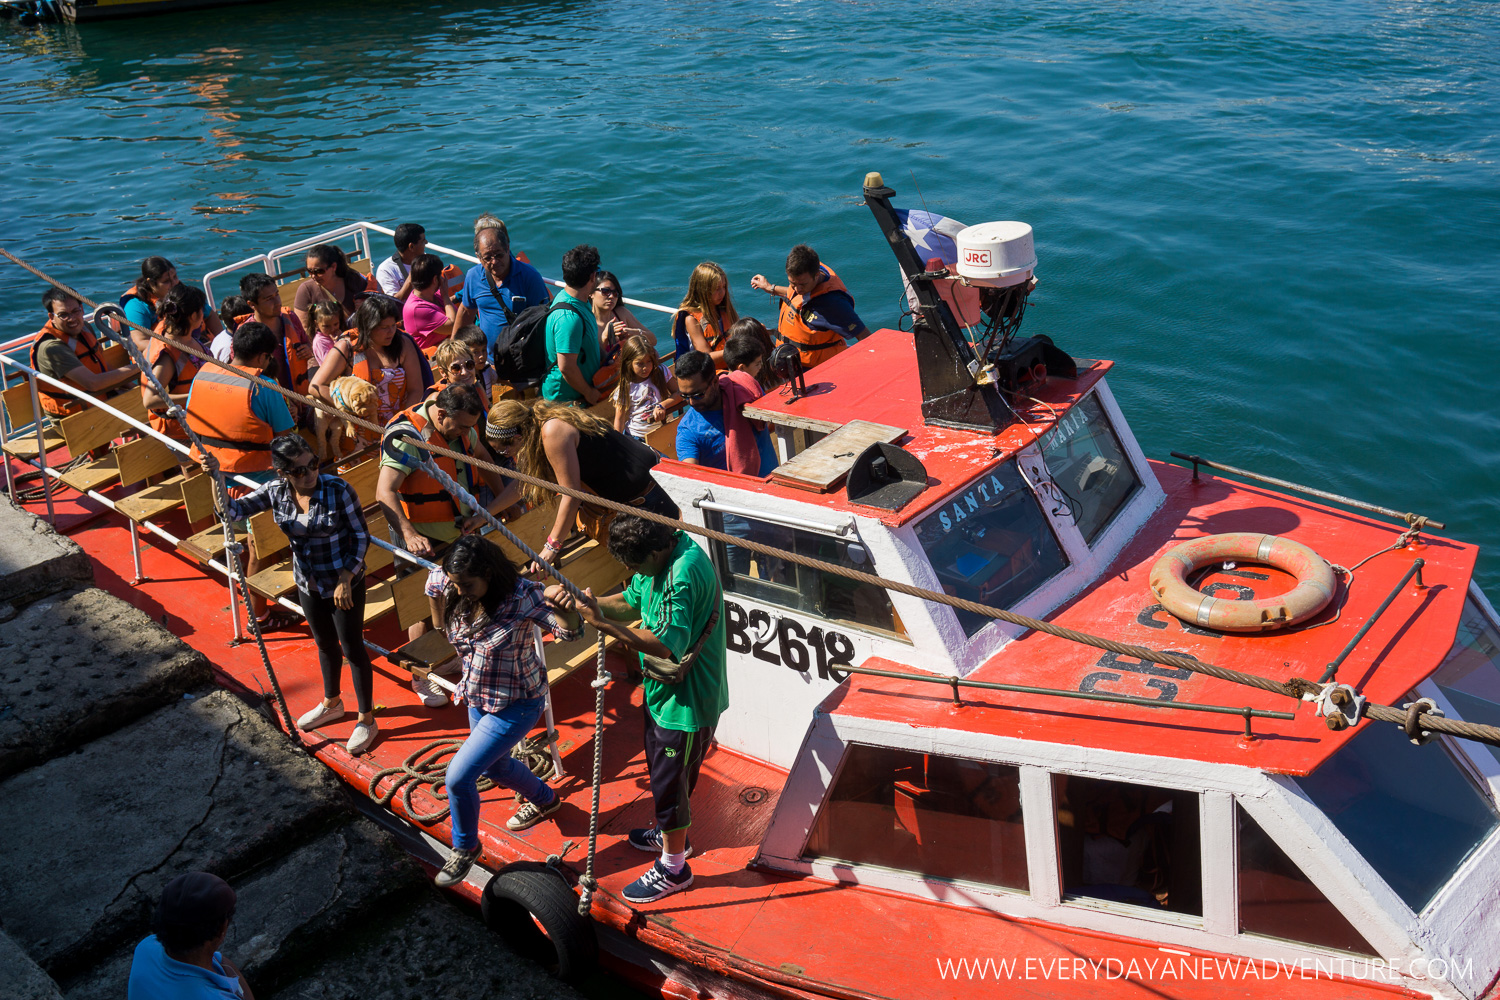 One of the lancha tours coming back from its cruise around the bay.